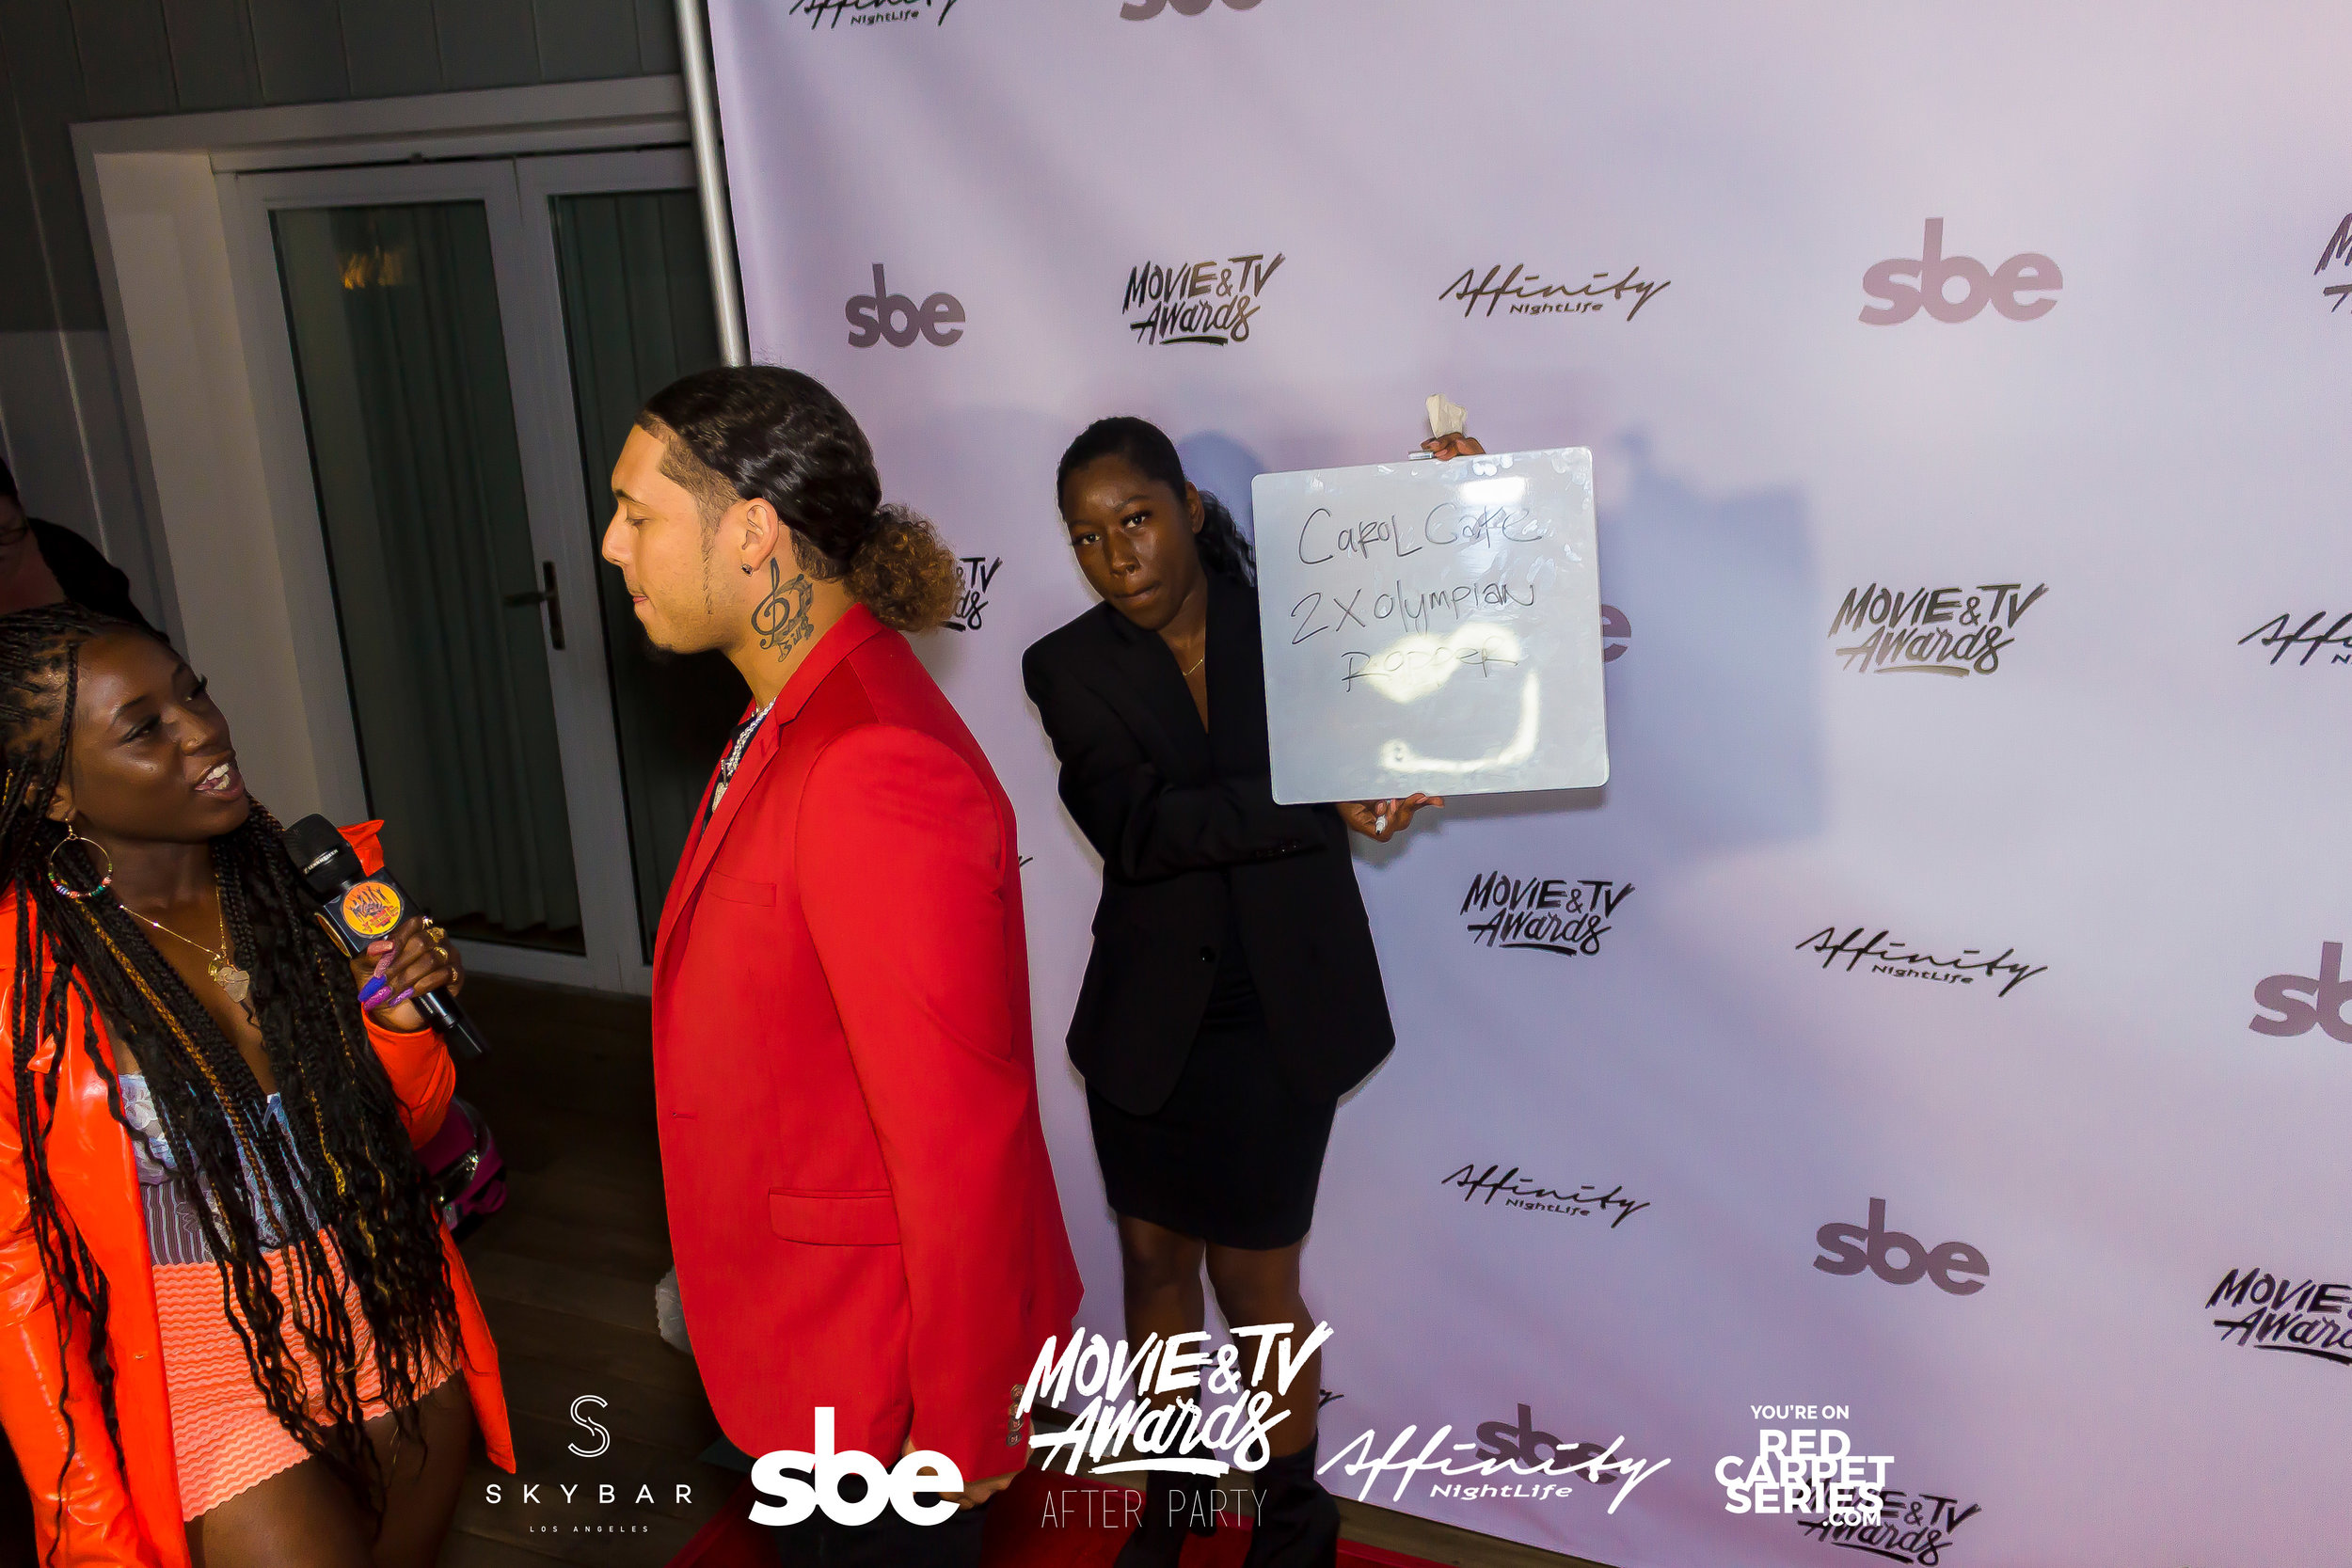 Affinity Nightlife MTV Movie & TV Awards After Party - Skybar at Mondrian - 06-15-19 - Vol. 1_58.jpg